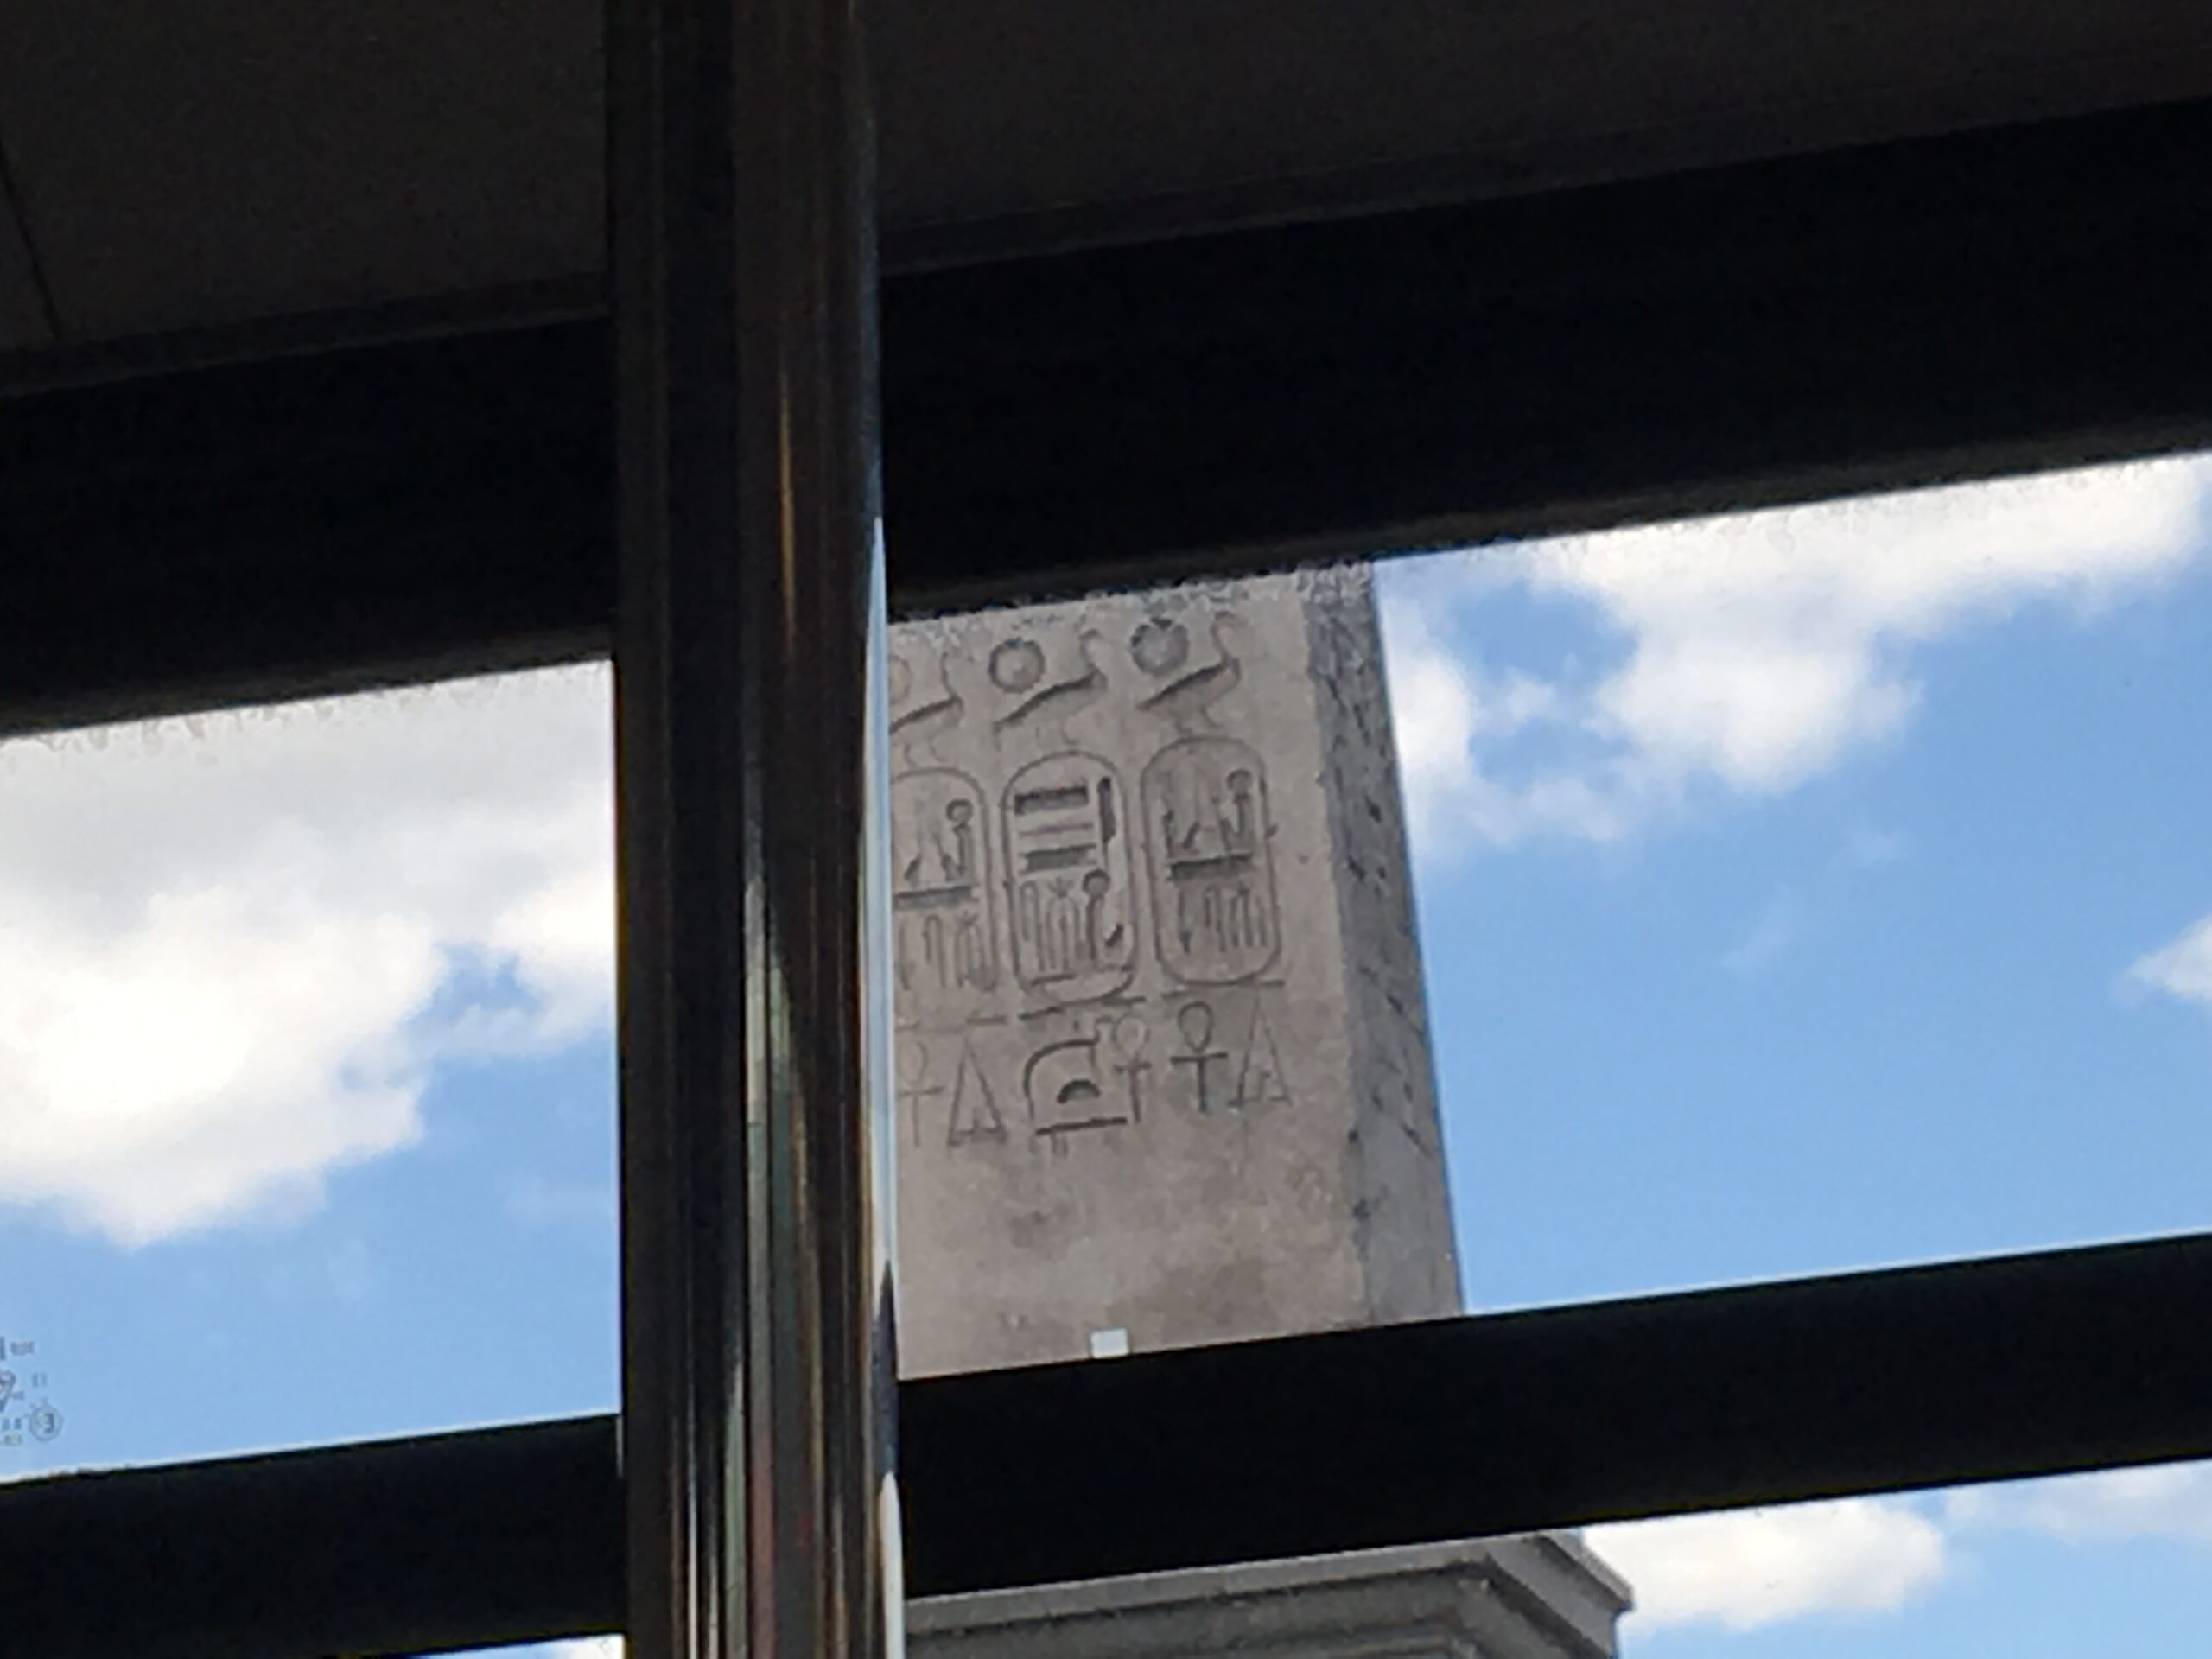 View of the obelisk with hieroglyphics in Paris, France